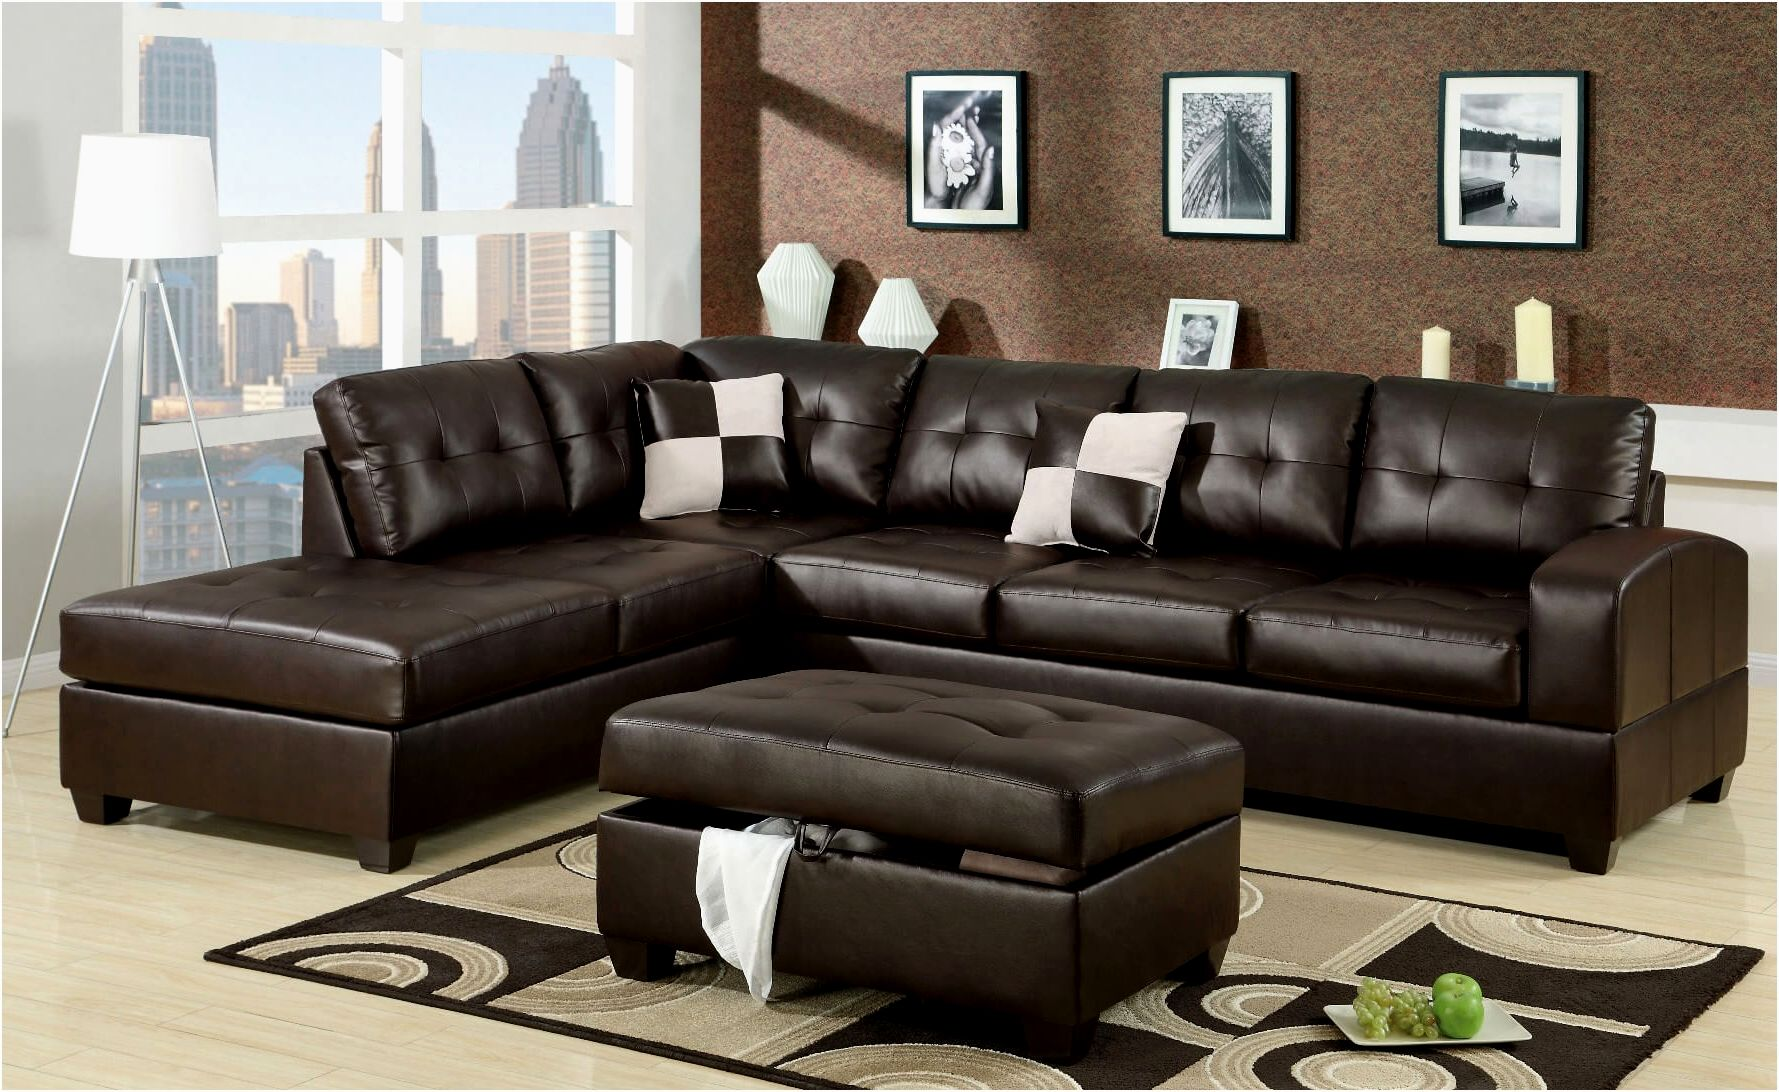 luxury cheap sectional sofas under 500 decoration-Superb Cheap Sectional sofas Under 500 Ideas